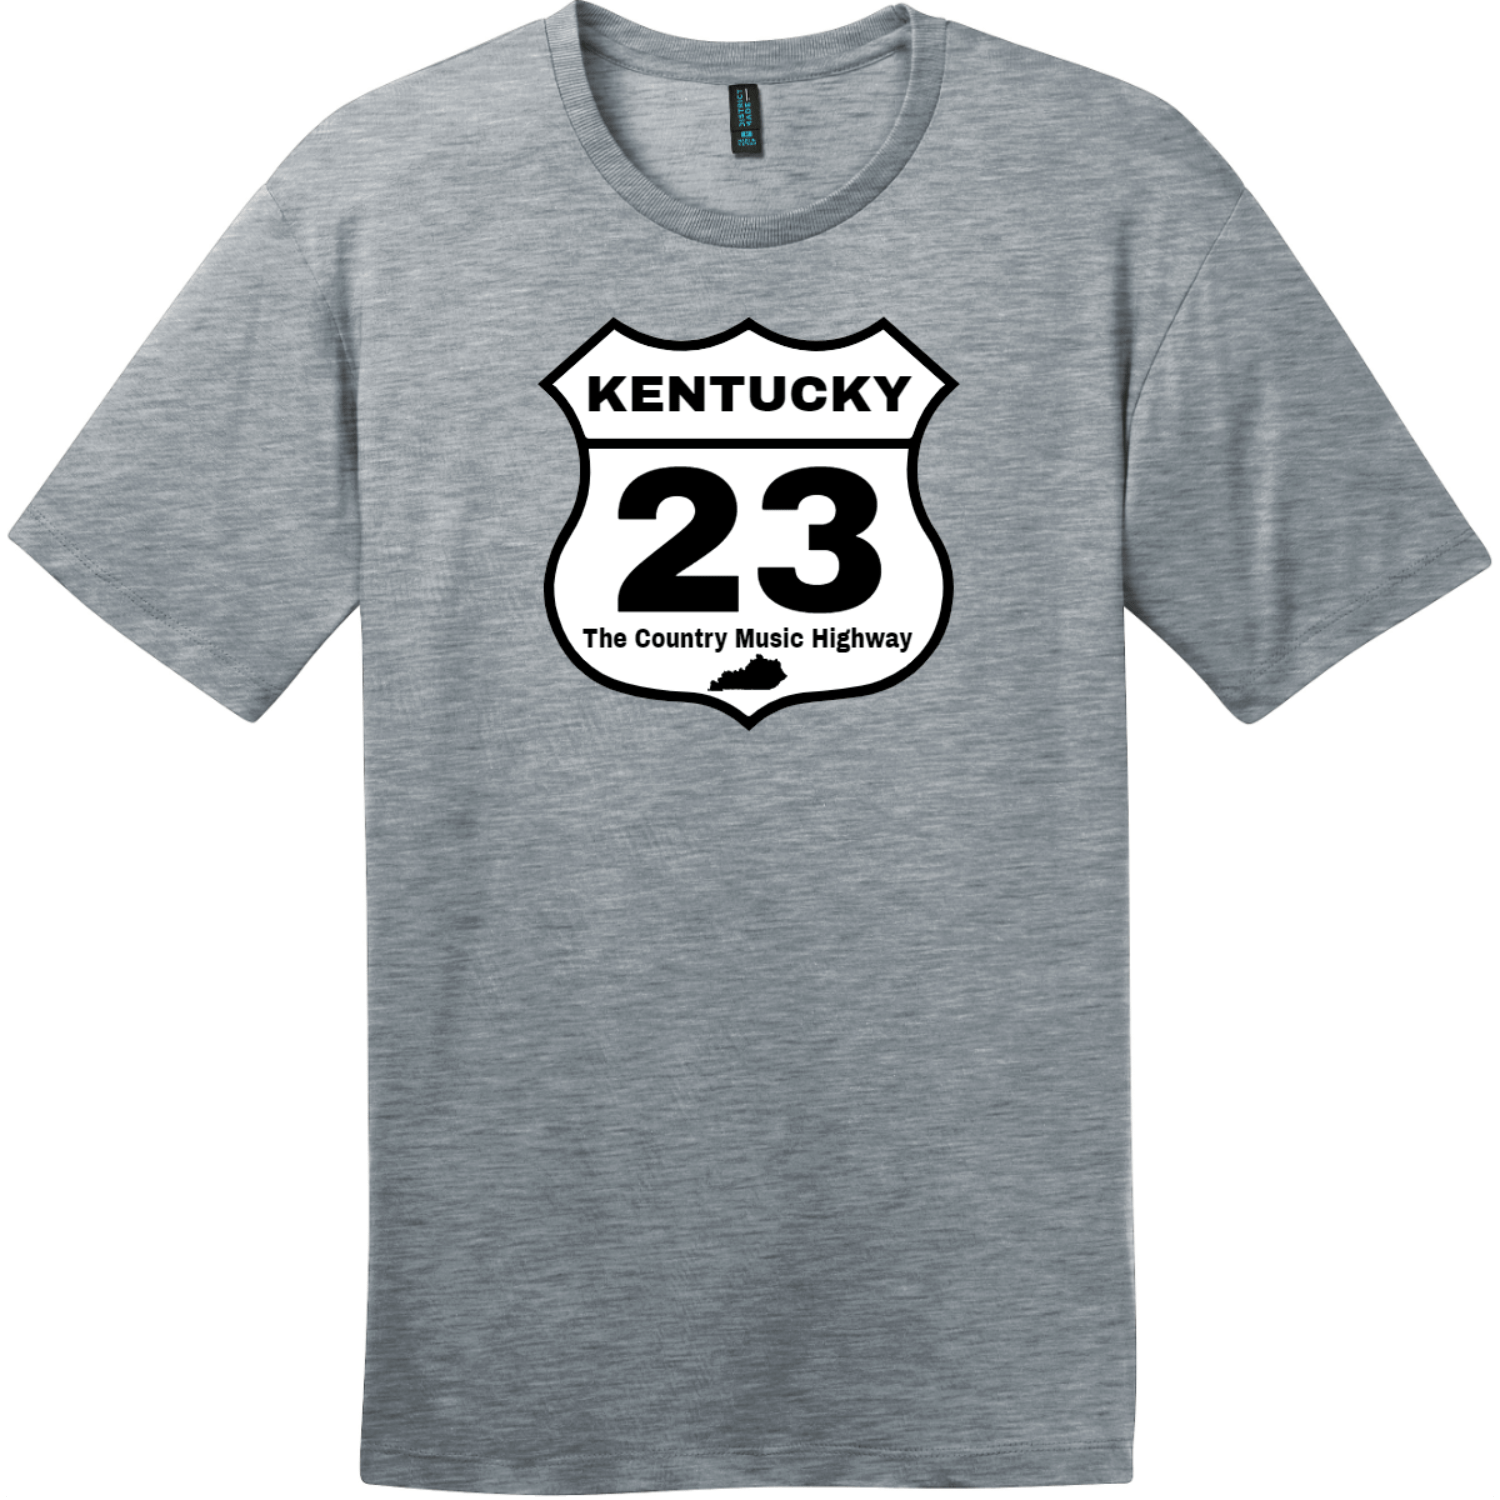 Kentucky 23 Country Music Highway T-Shirt Heathered Steel District Perfect Weight Tee DT104